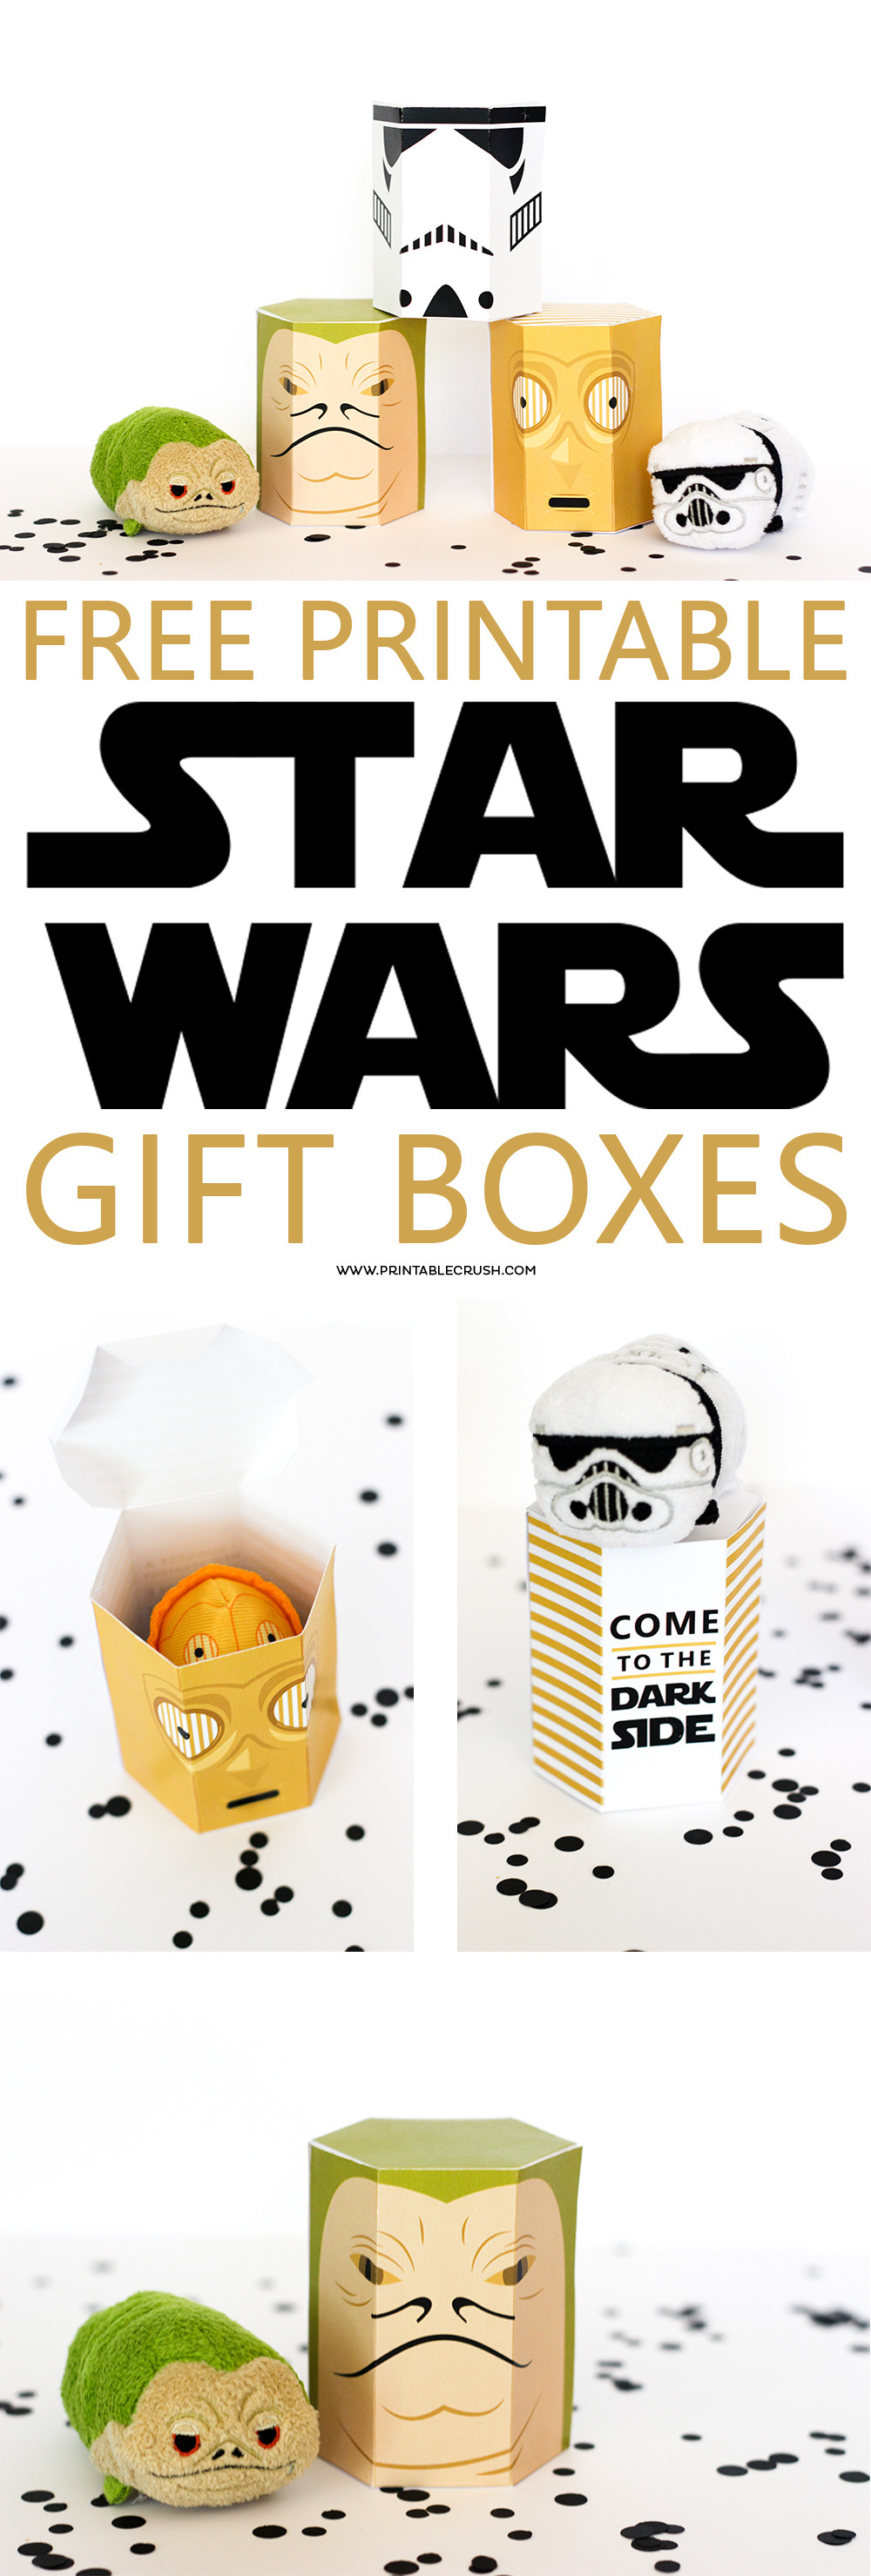 Best ideas about Star Wars Birthday Gifts . Save or Pin FREE Star Wars Printable Gift Boxes Printable Crush Now.